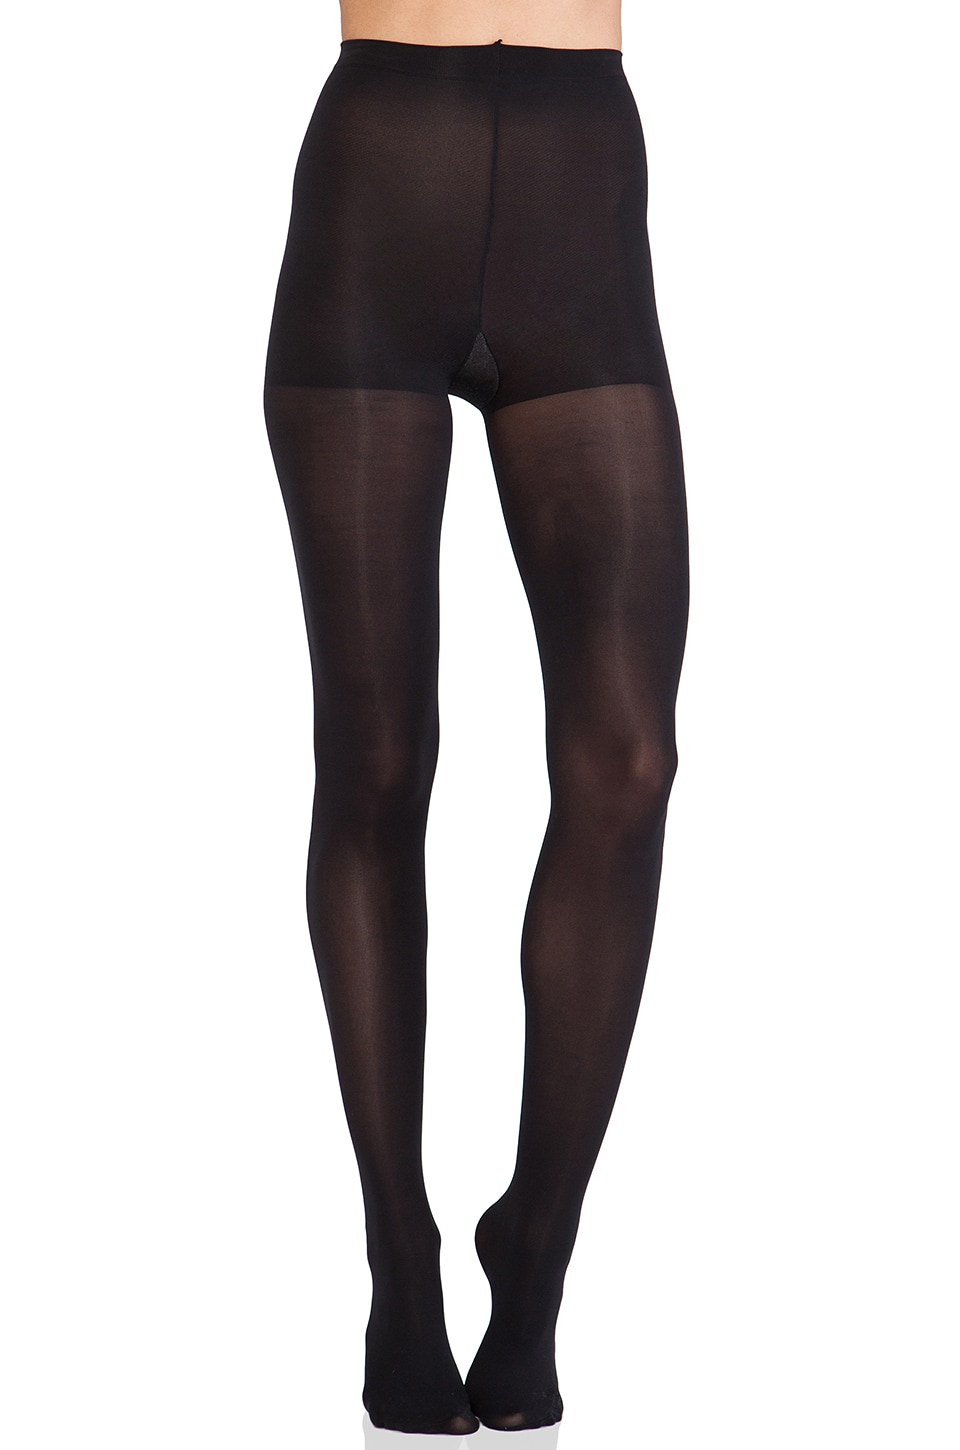 Pretty Polly In Control Toner Tights in Black